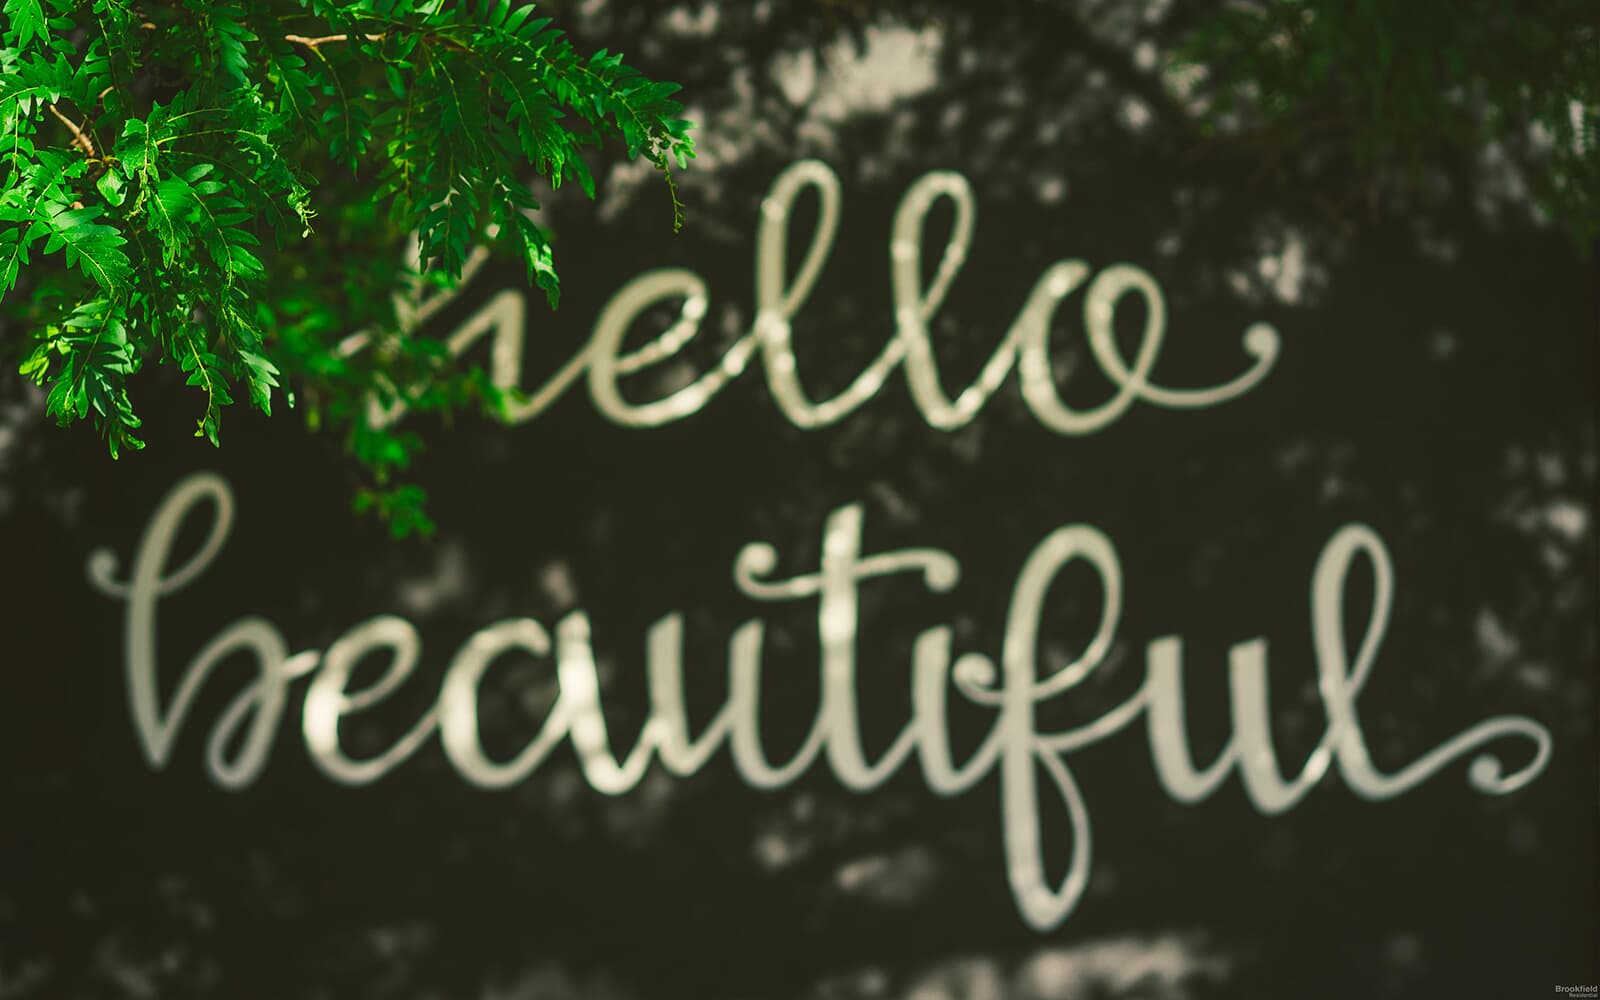 Cursive Hello Beautiful Sign in Whitby, ON